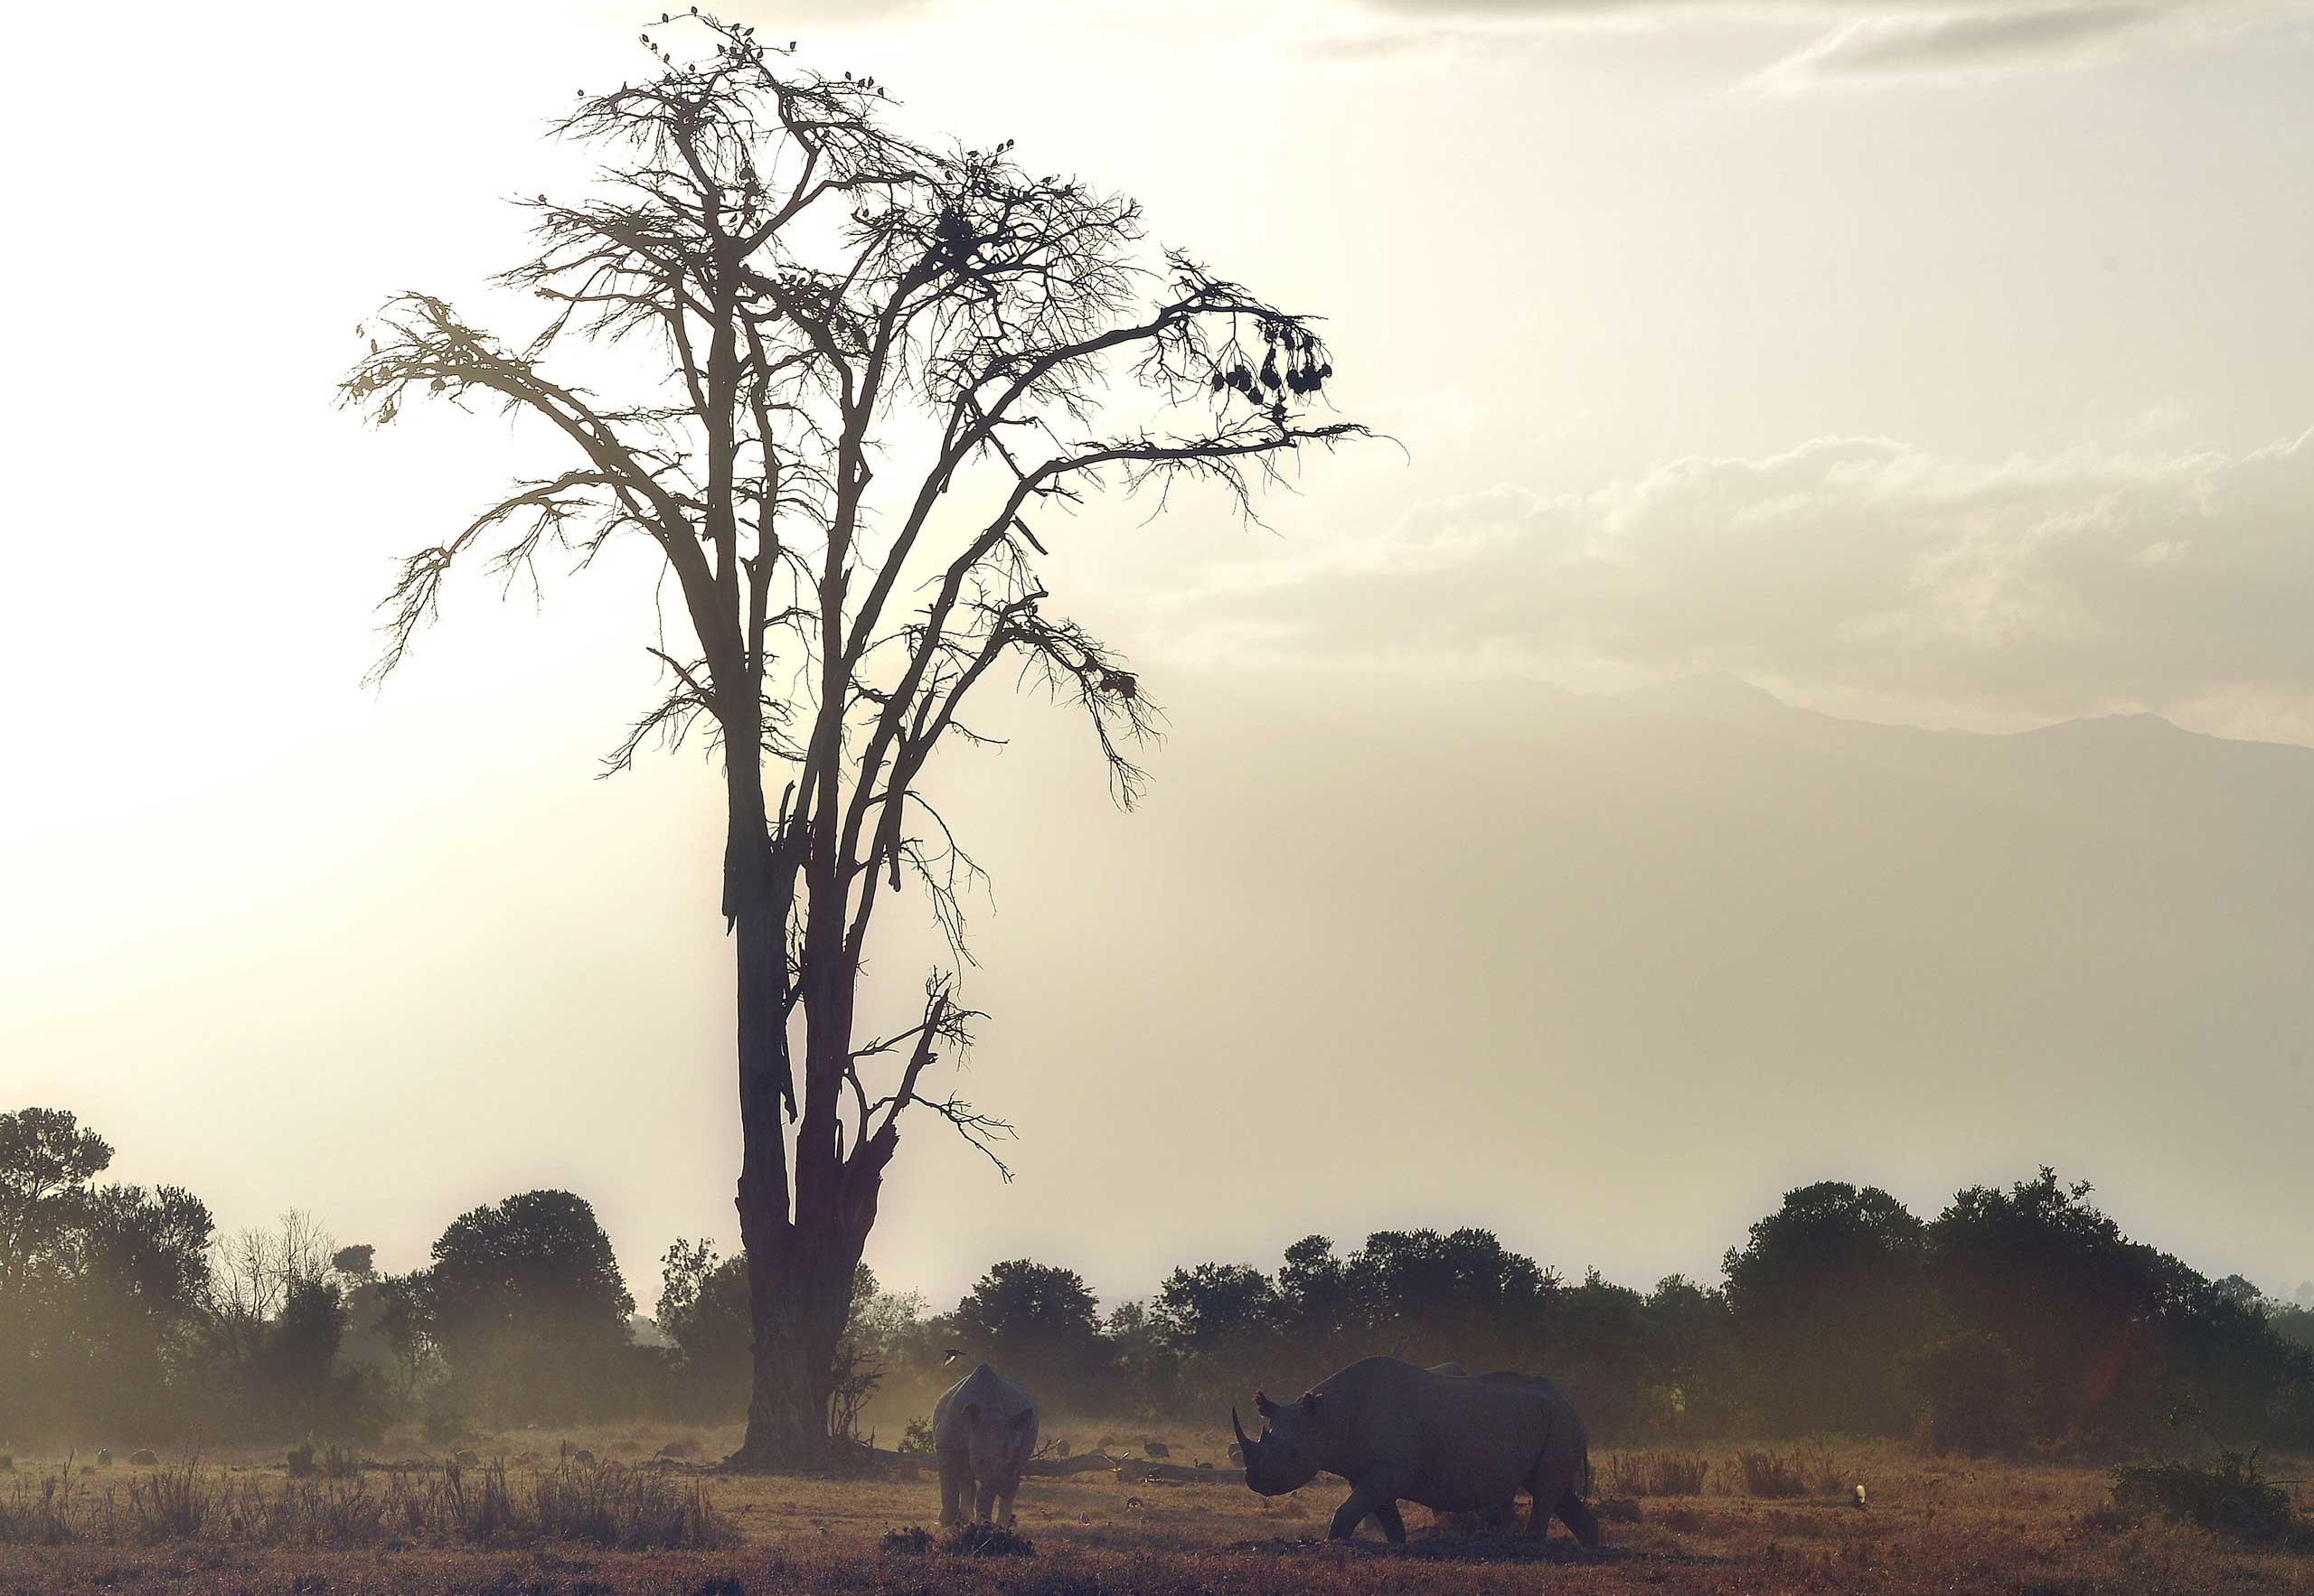 Jan. 28, 2015. Southern white rhinoceros walk through the Ol Pejeta Conservancy north of the Kenyan capital Nairobi, as conservationists and scientists met in Kenya to come up with a last ditch plan to save the rhinoceros from extinction.